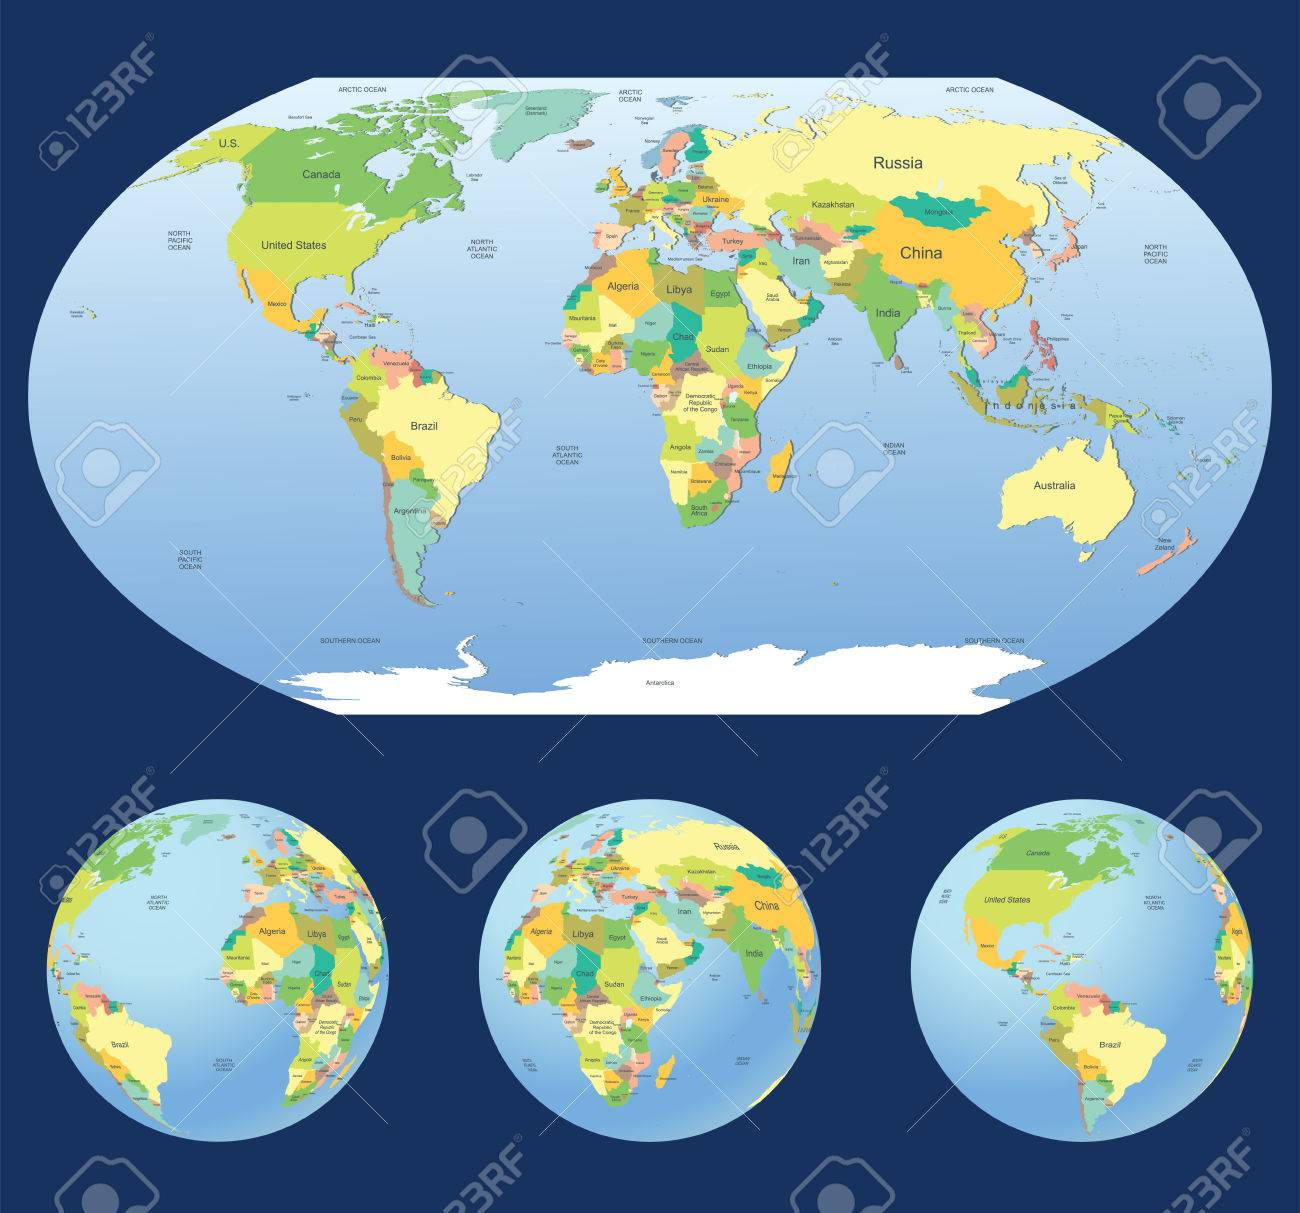 Highly detailed world map with 3 earth globes on coordinates of earth, earthquake earth, encyclopedia of earth, death of earth, inhabitants of earth, gps of earth, united states of earth, camera of earth, city of earth, existence of earth, google of earth, information of earth, sun of earth, project of earth, detailed aruba map, photographs of earth,